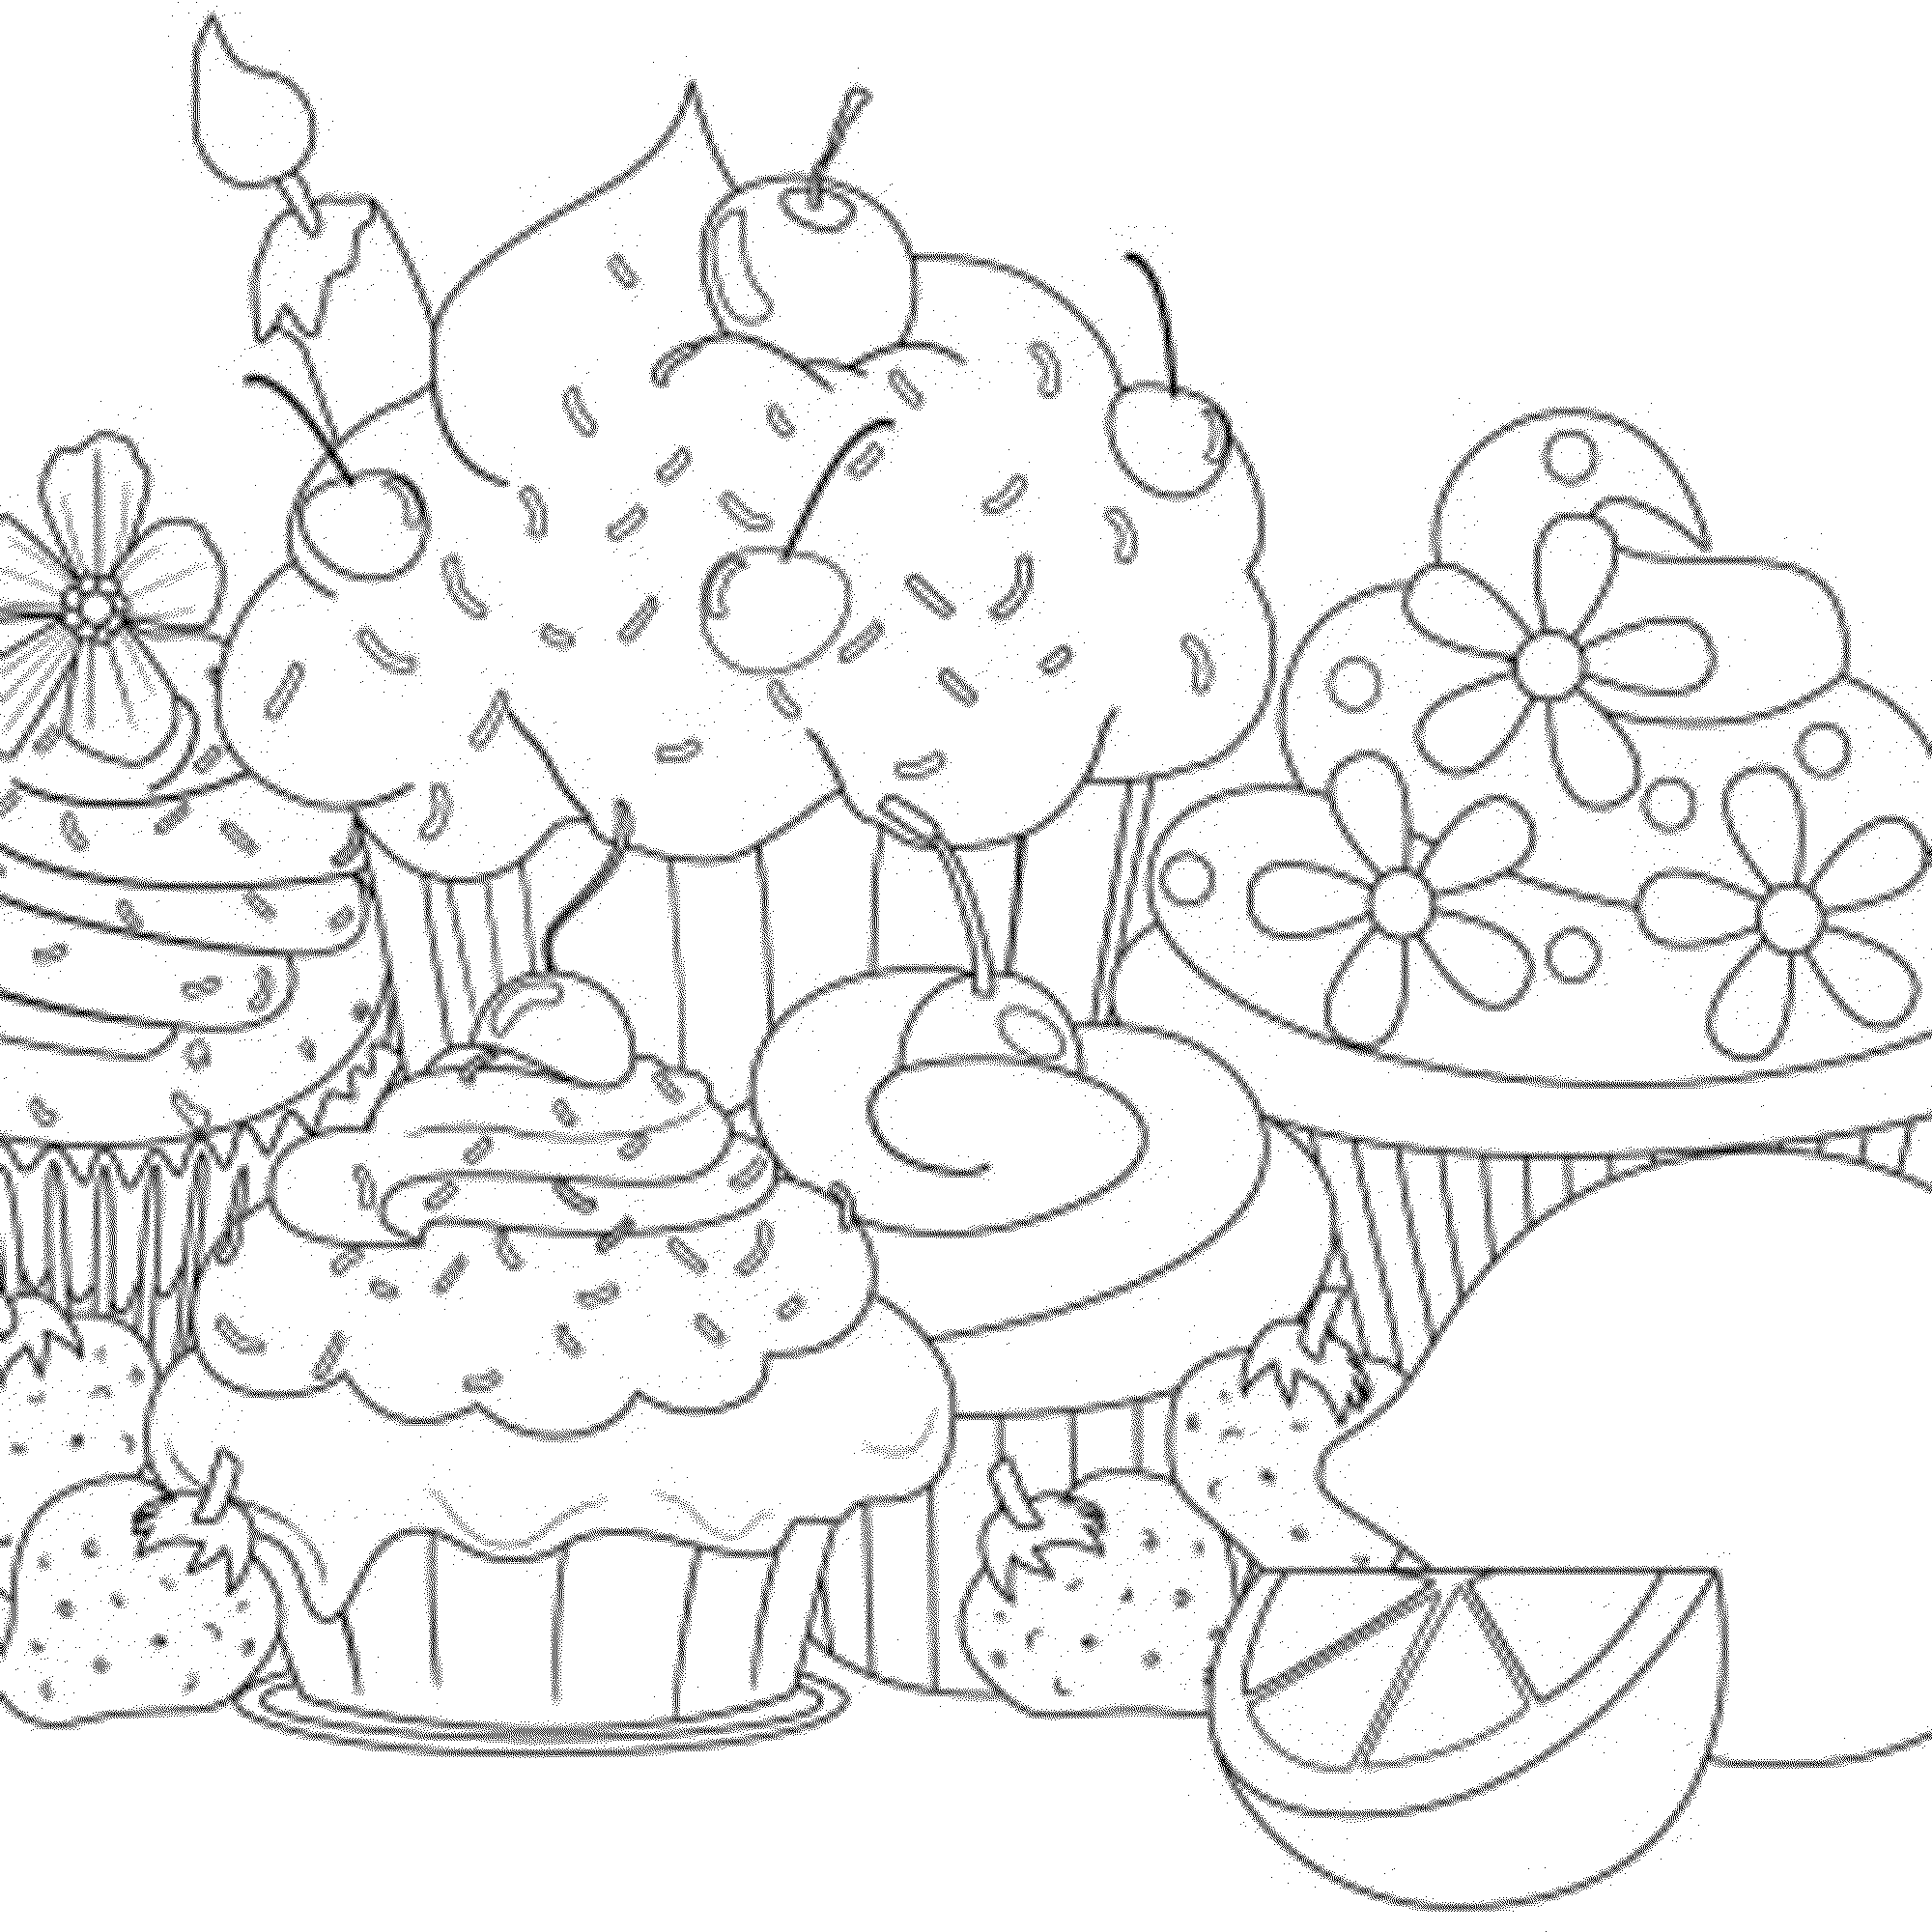 cupcakes coloring page | Color Art Therapy - Food And Drinks ...